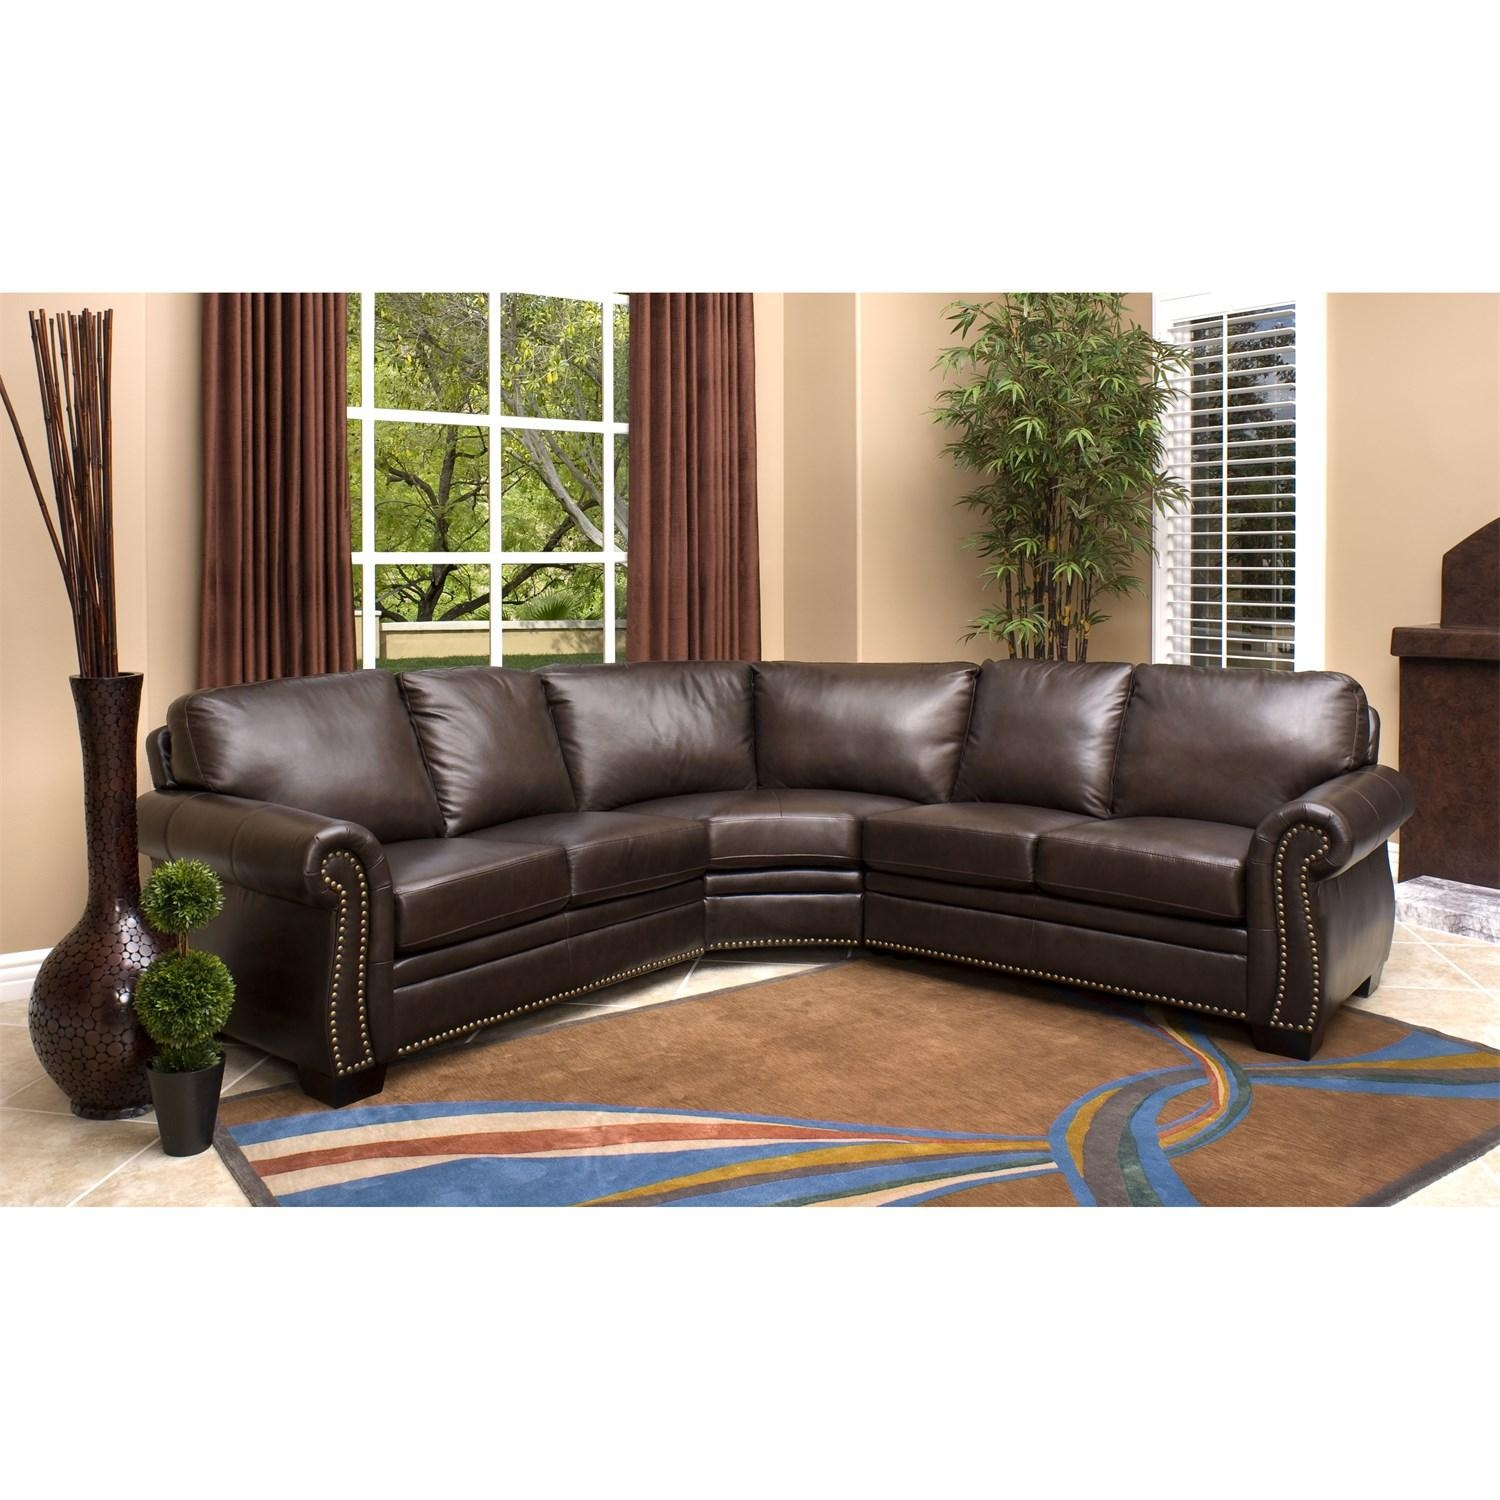 Abbyson Living Ci N410 Brn Oxford Italian Leather Sectional Sofa With Regard To Abbyson Sectional Sofa (Image 3 of 15)